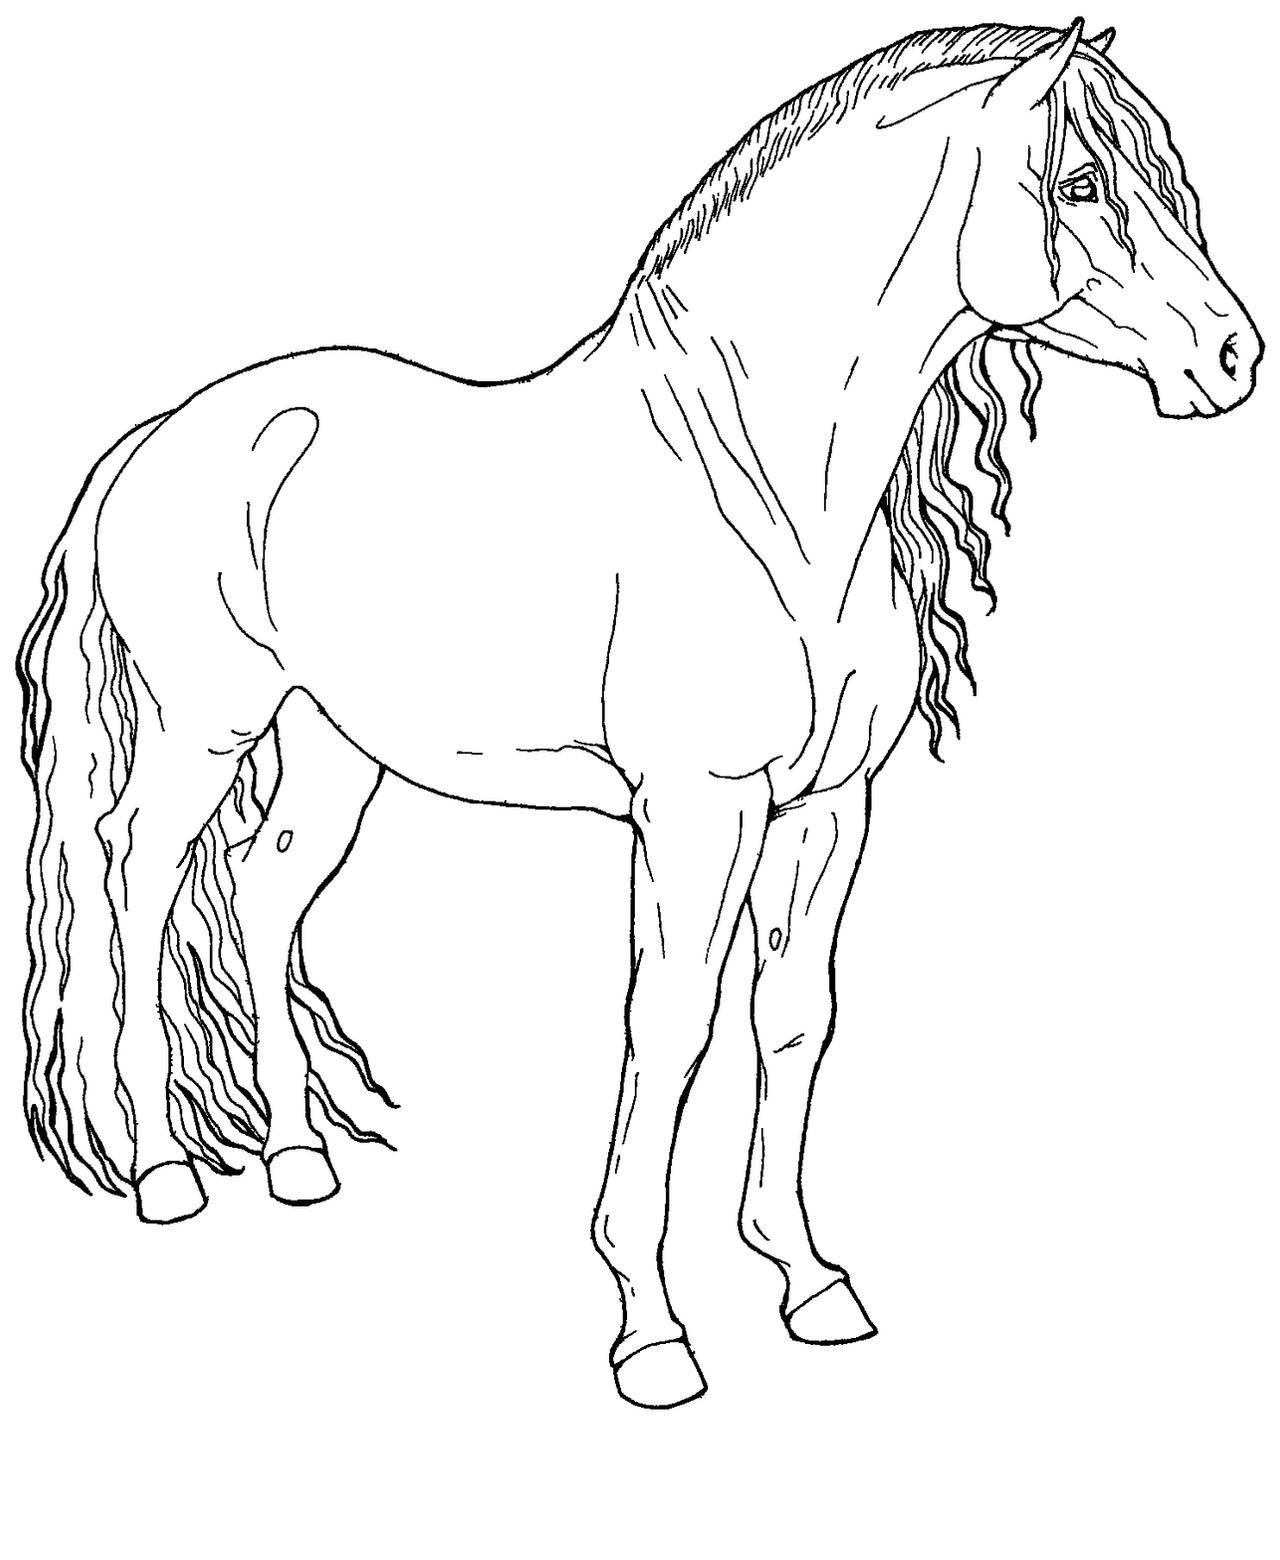 Image Result For Draft Horse Coloring